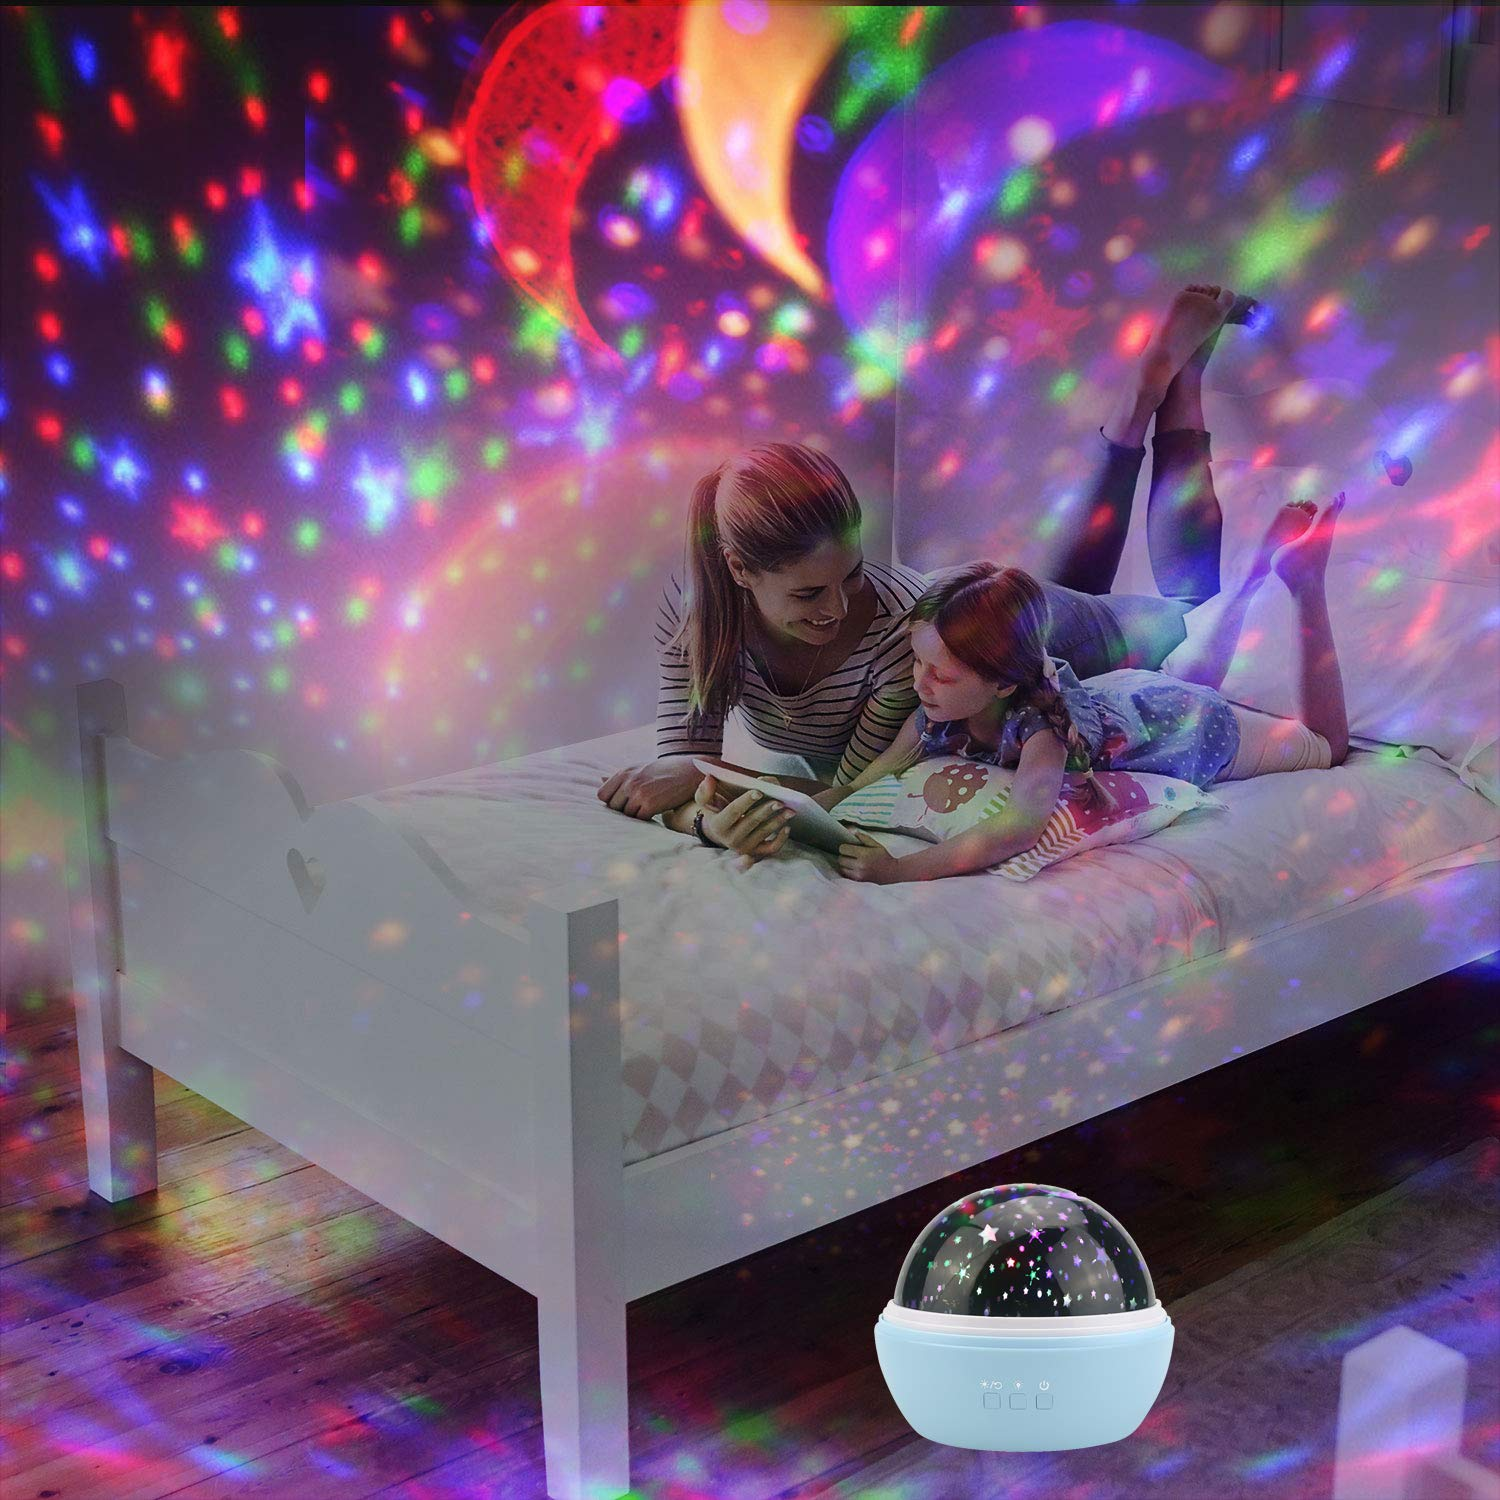 Black USB Battery Powered Projector Light Powcan Novelty Moon Star Projector Night Light Rotating Starry LED Baby Projection Lamp Ocean Projector Film Changeable